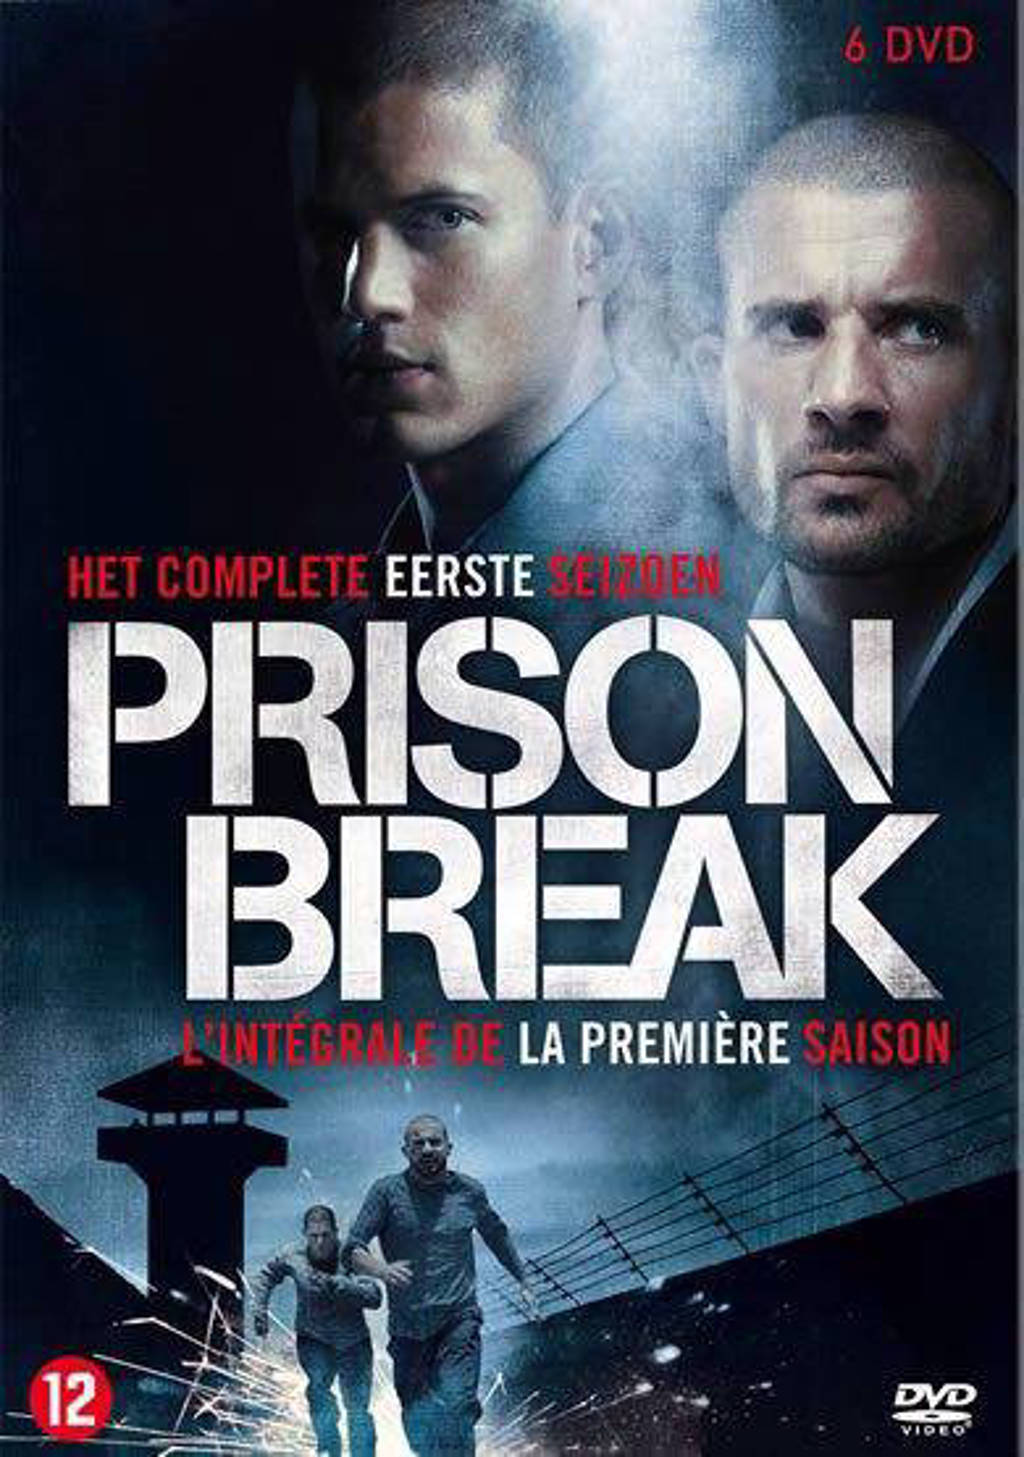 Prison break - Seizoen 1 (DVD)